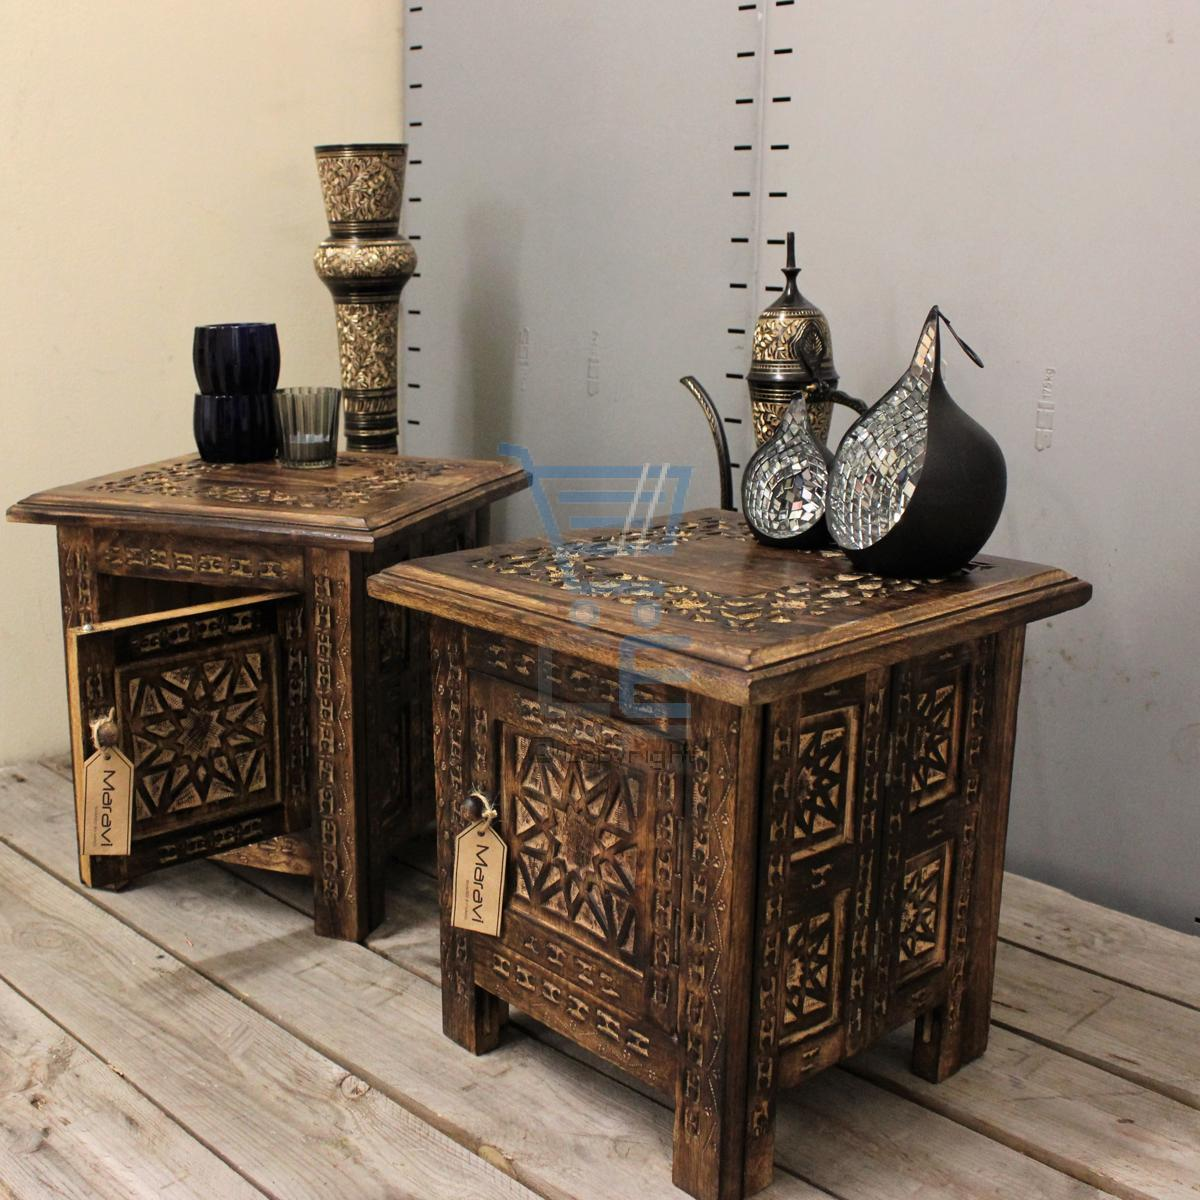 Maravi set of 2 small square side tables moroccan style carving storage ebay - Mobili marocchini ...